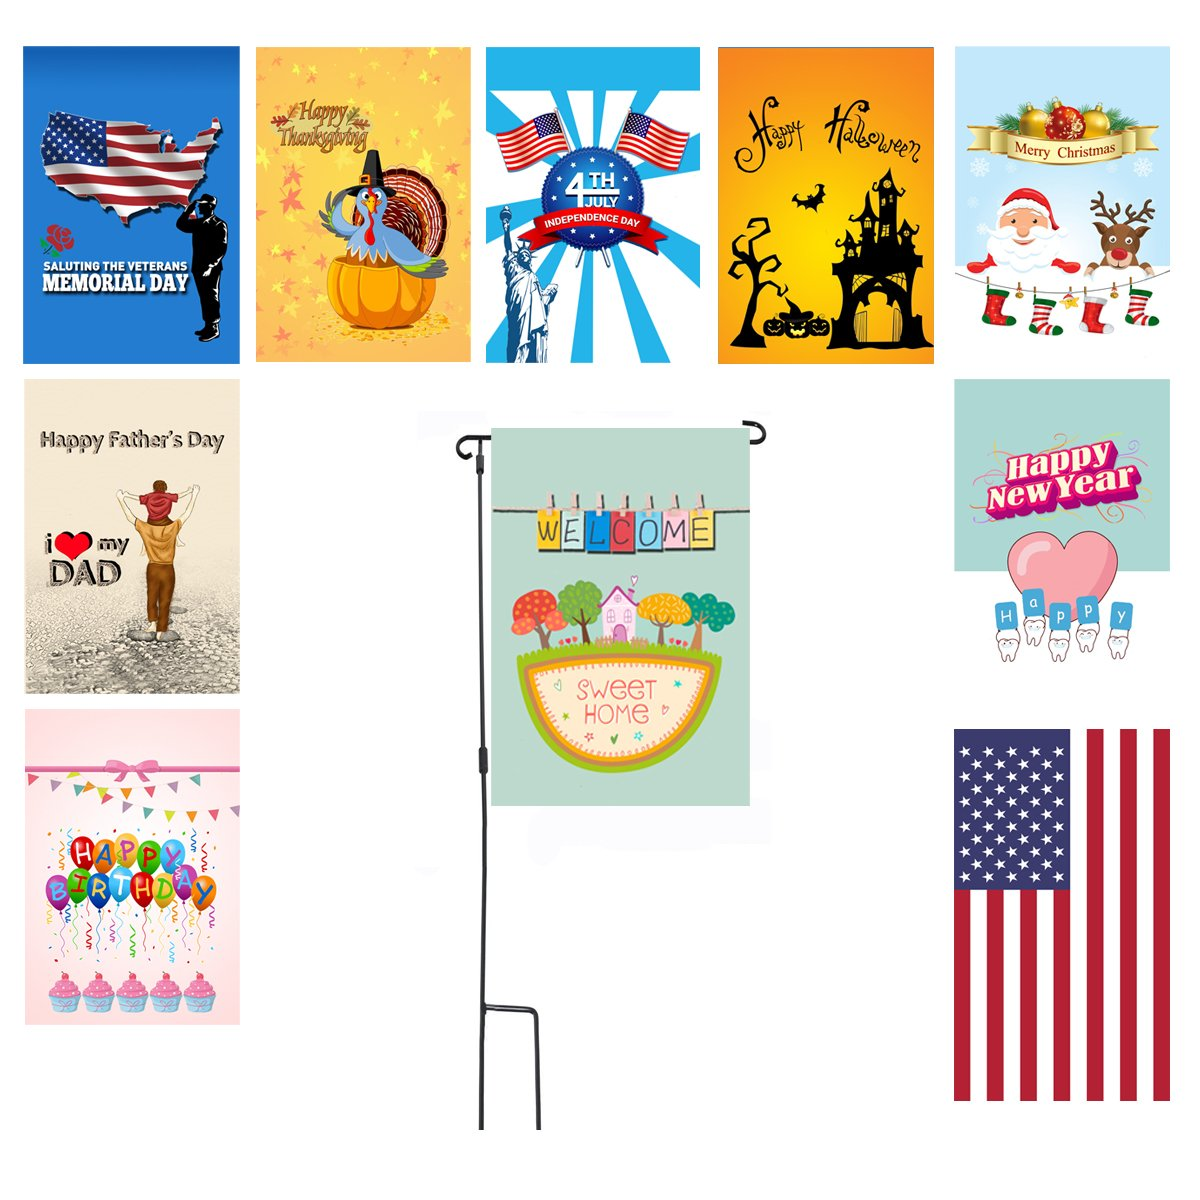 SUNDAY Veterans Seasonal Holiday Garden Flag Set of 10 12''x18'' Outdoor Double Sides Garden Flag A Pole Home Garden Decor